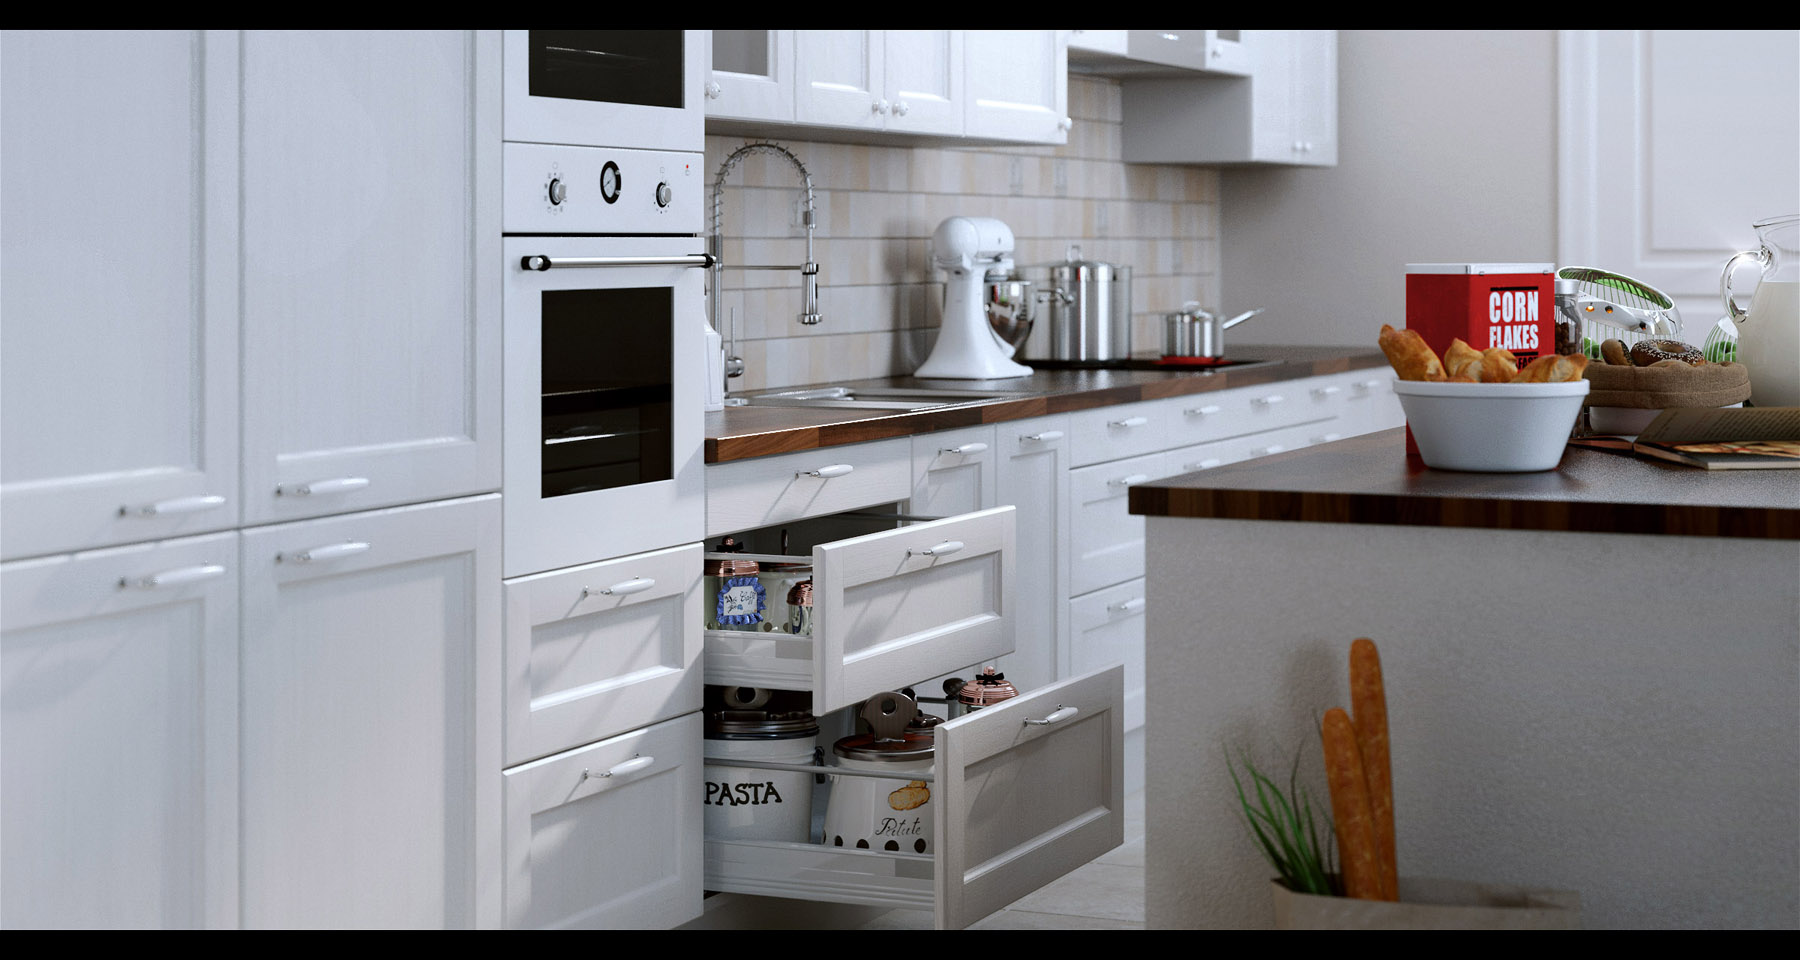 render_kitch_004_final